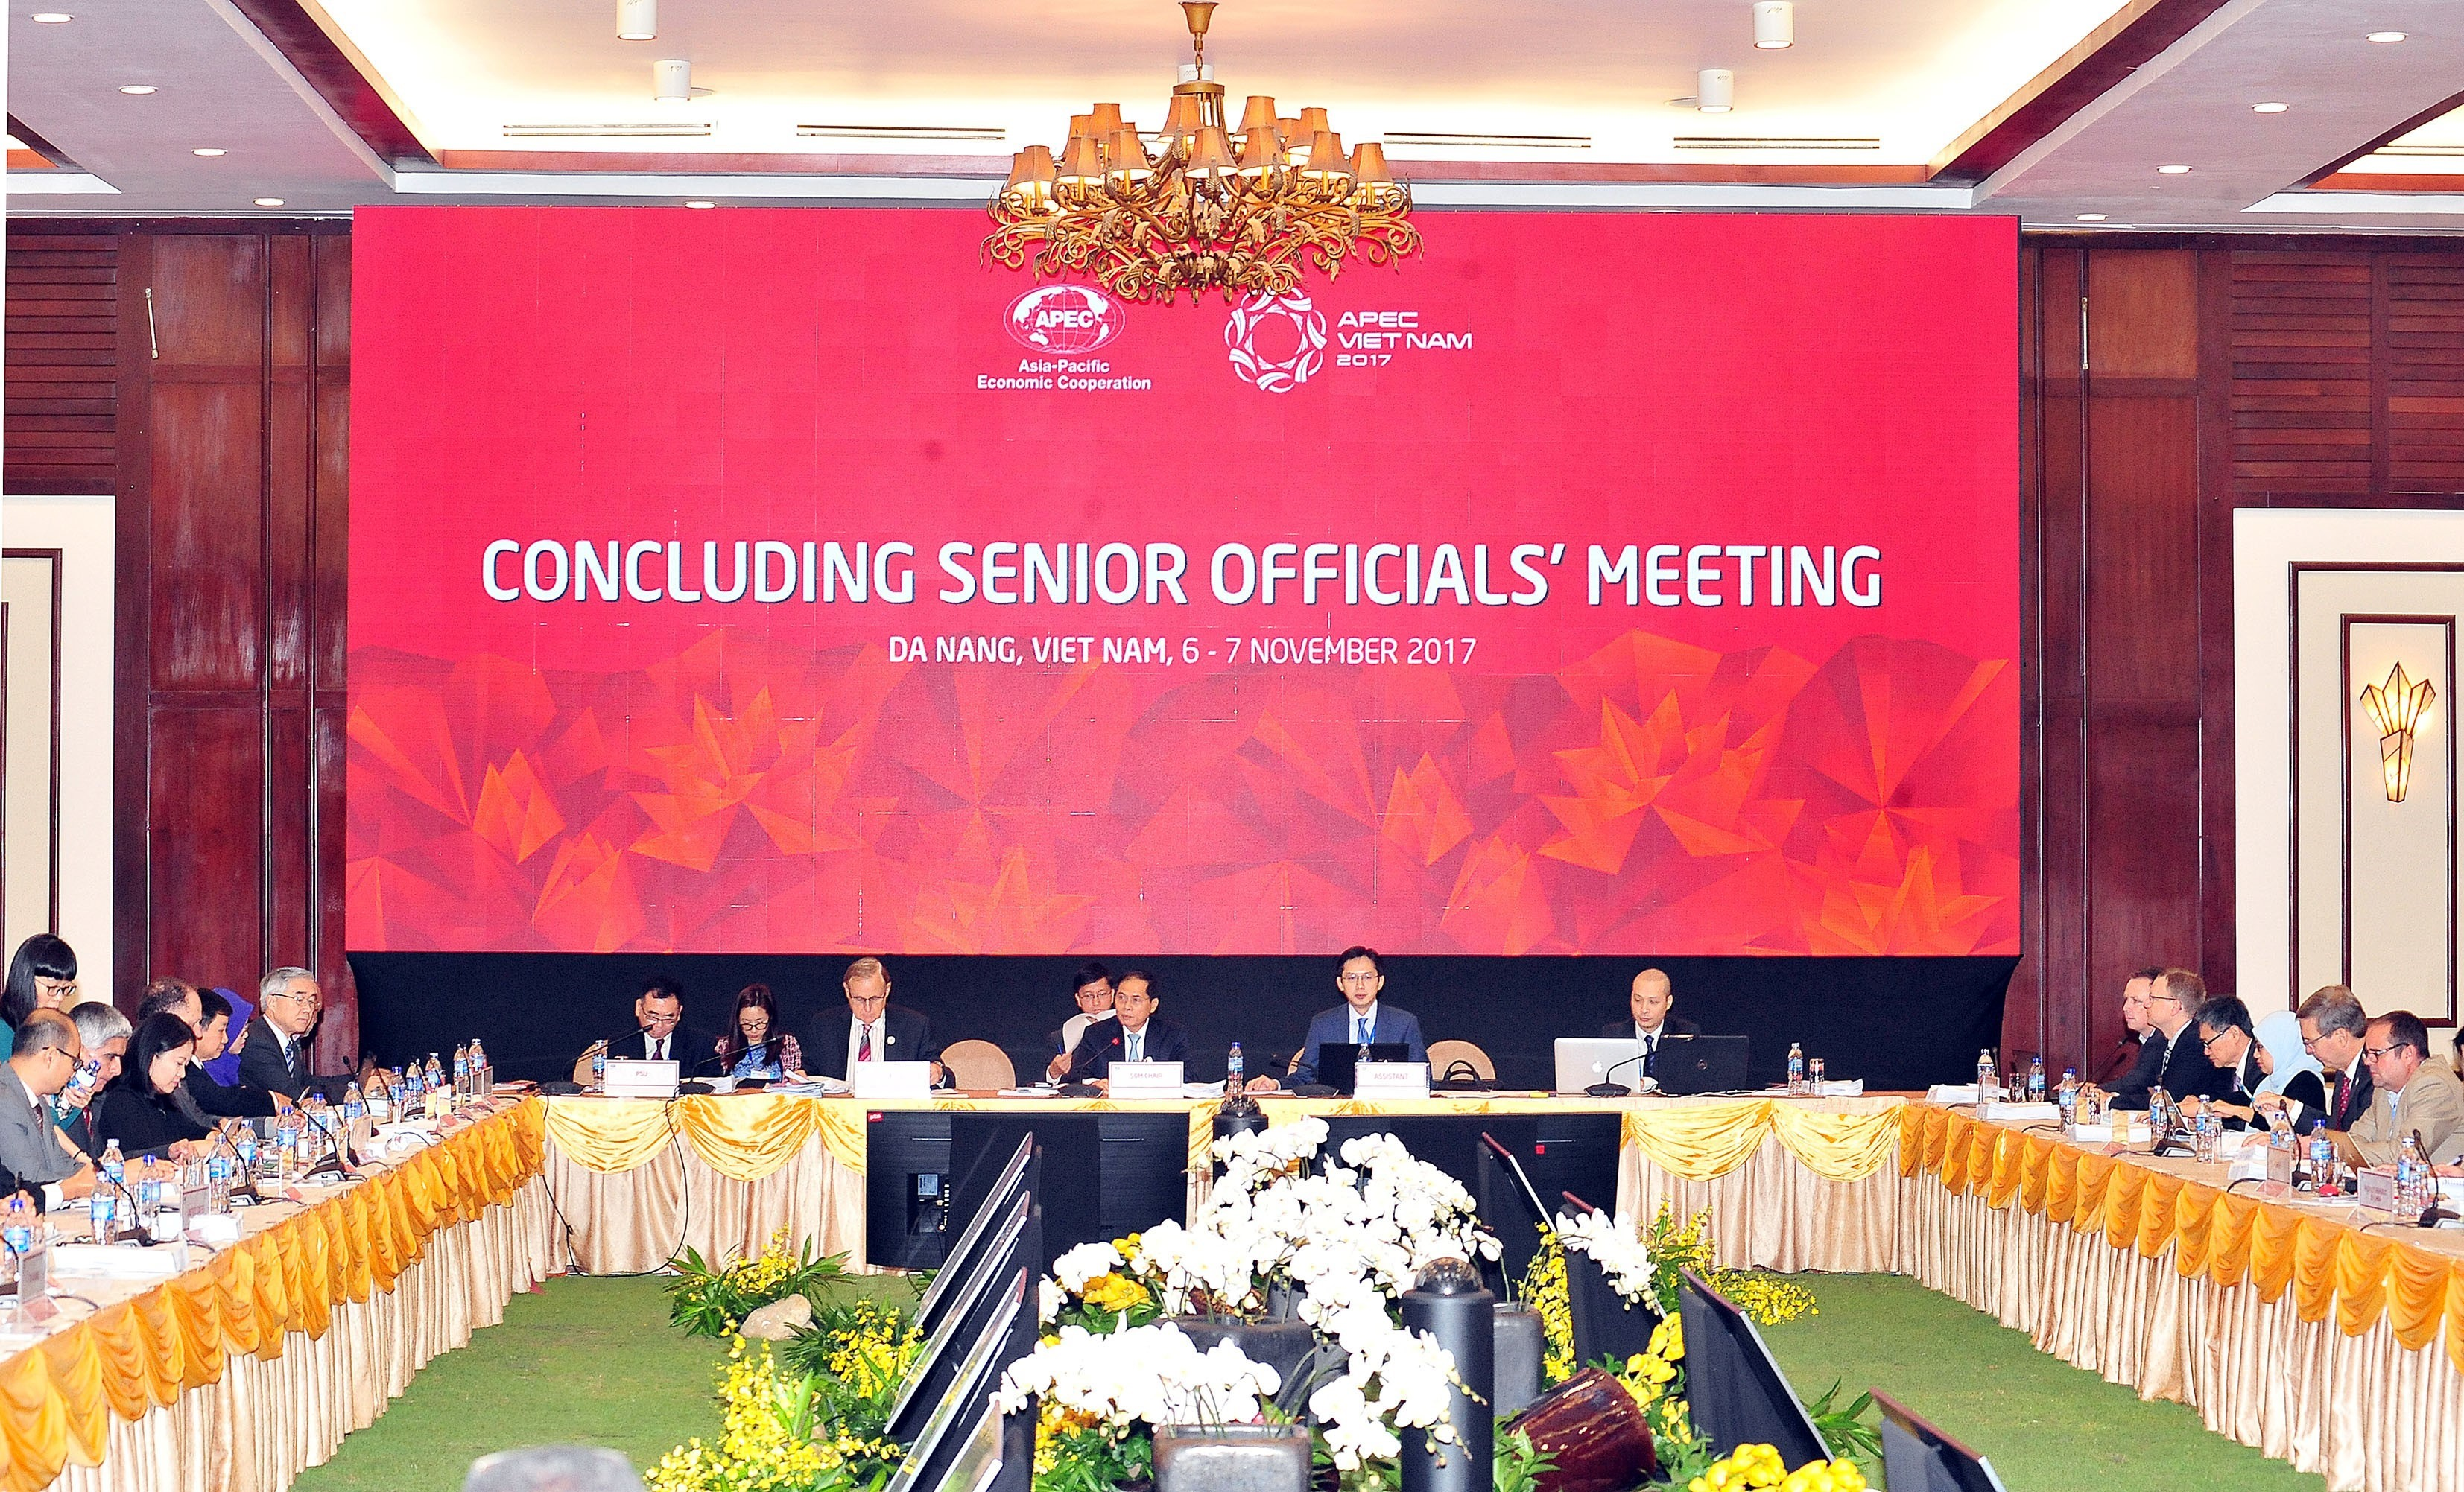 Concluding Senior Officials' Meeting kicked off in Danang